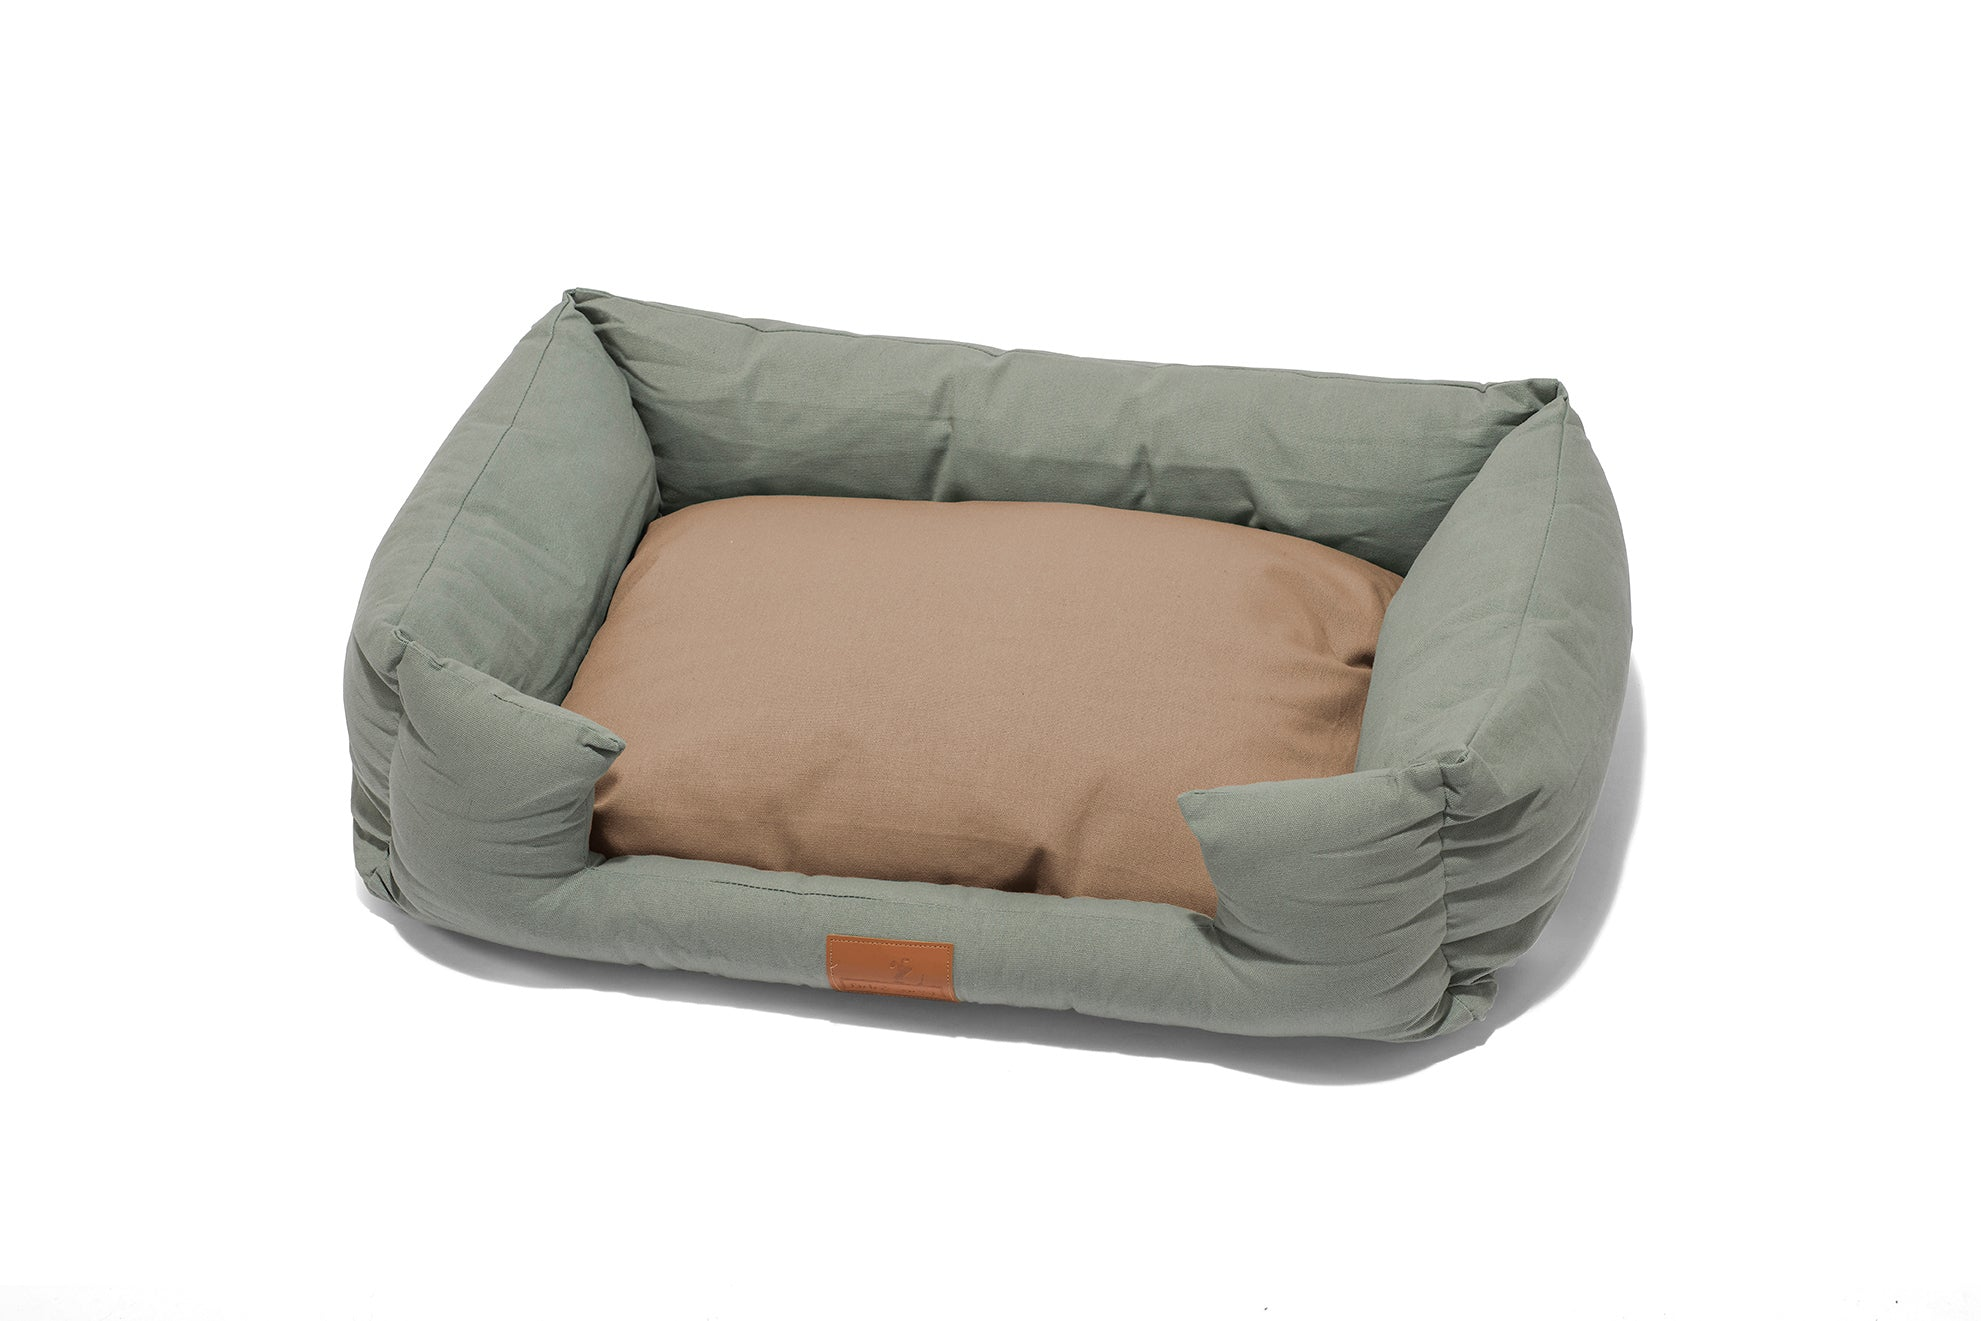 Fido's Nest | Luxury modern crib dog bed. Eco-friendly, hypoallergenic, durable and machine washable. Choice of wool or hollow-fibre filling. In Sage.